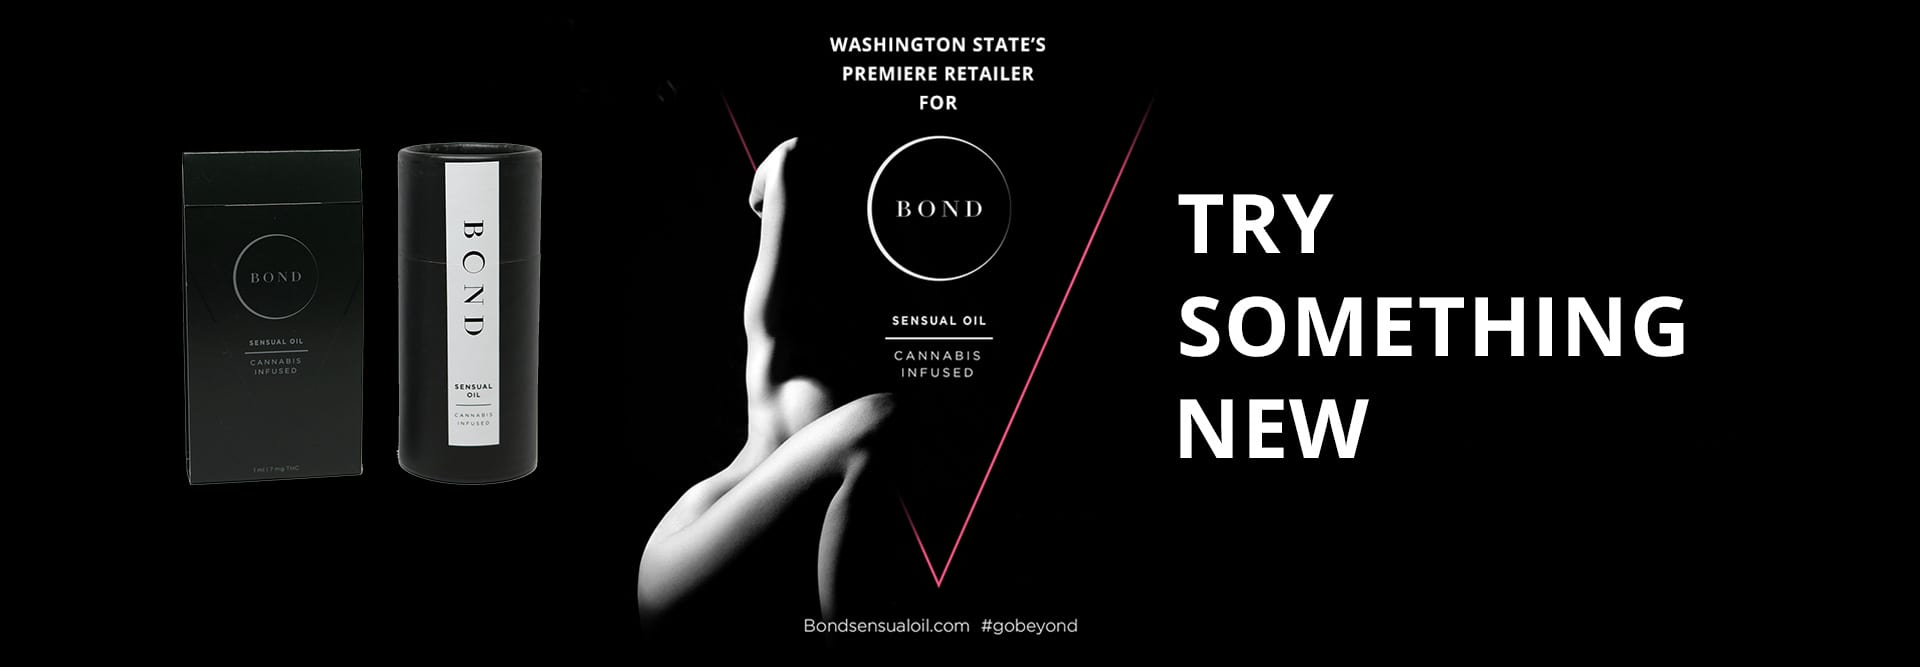 bond-try-something-no-pricesv2